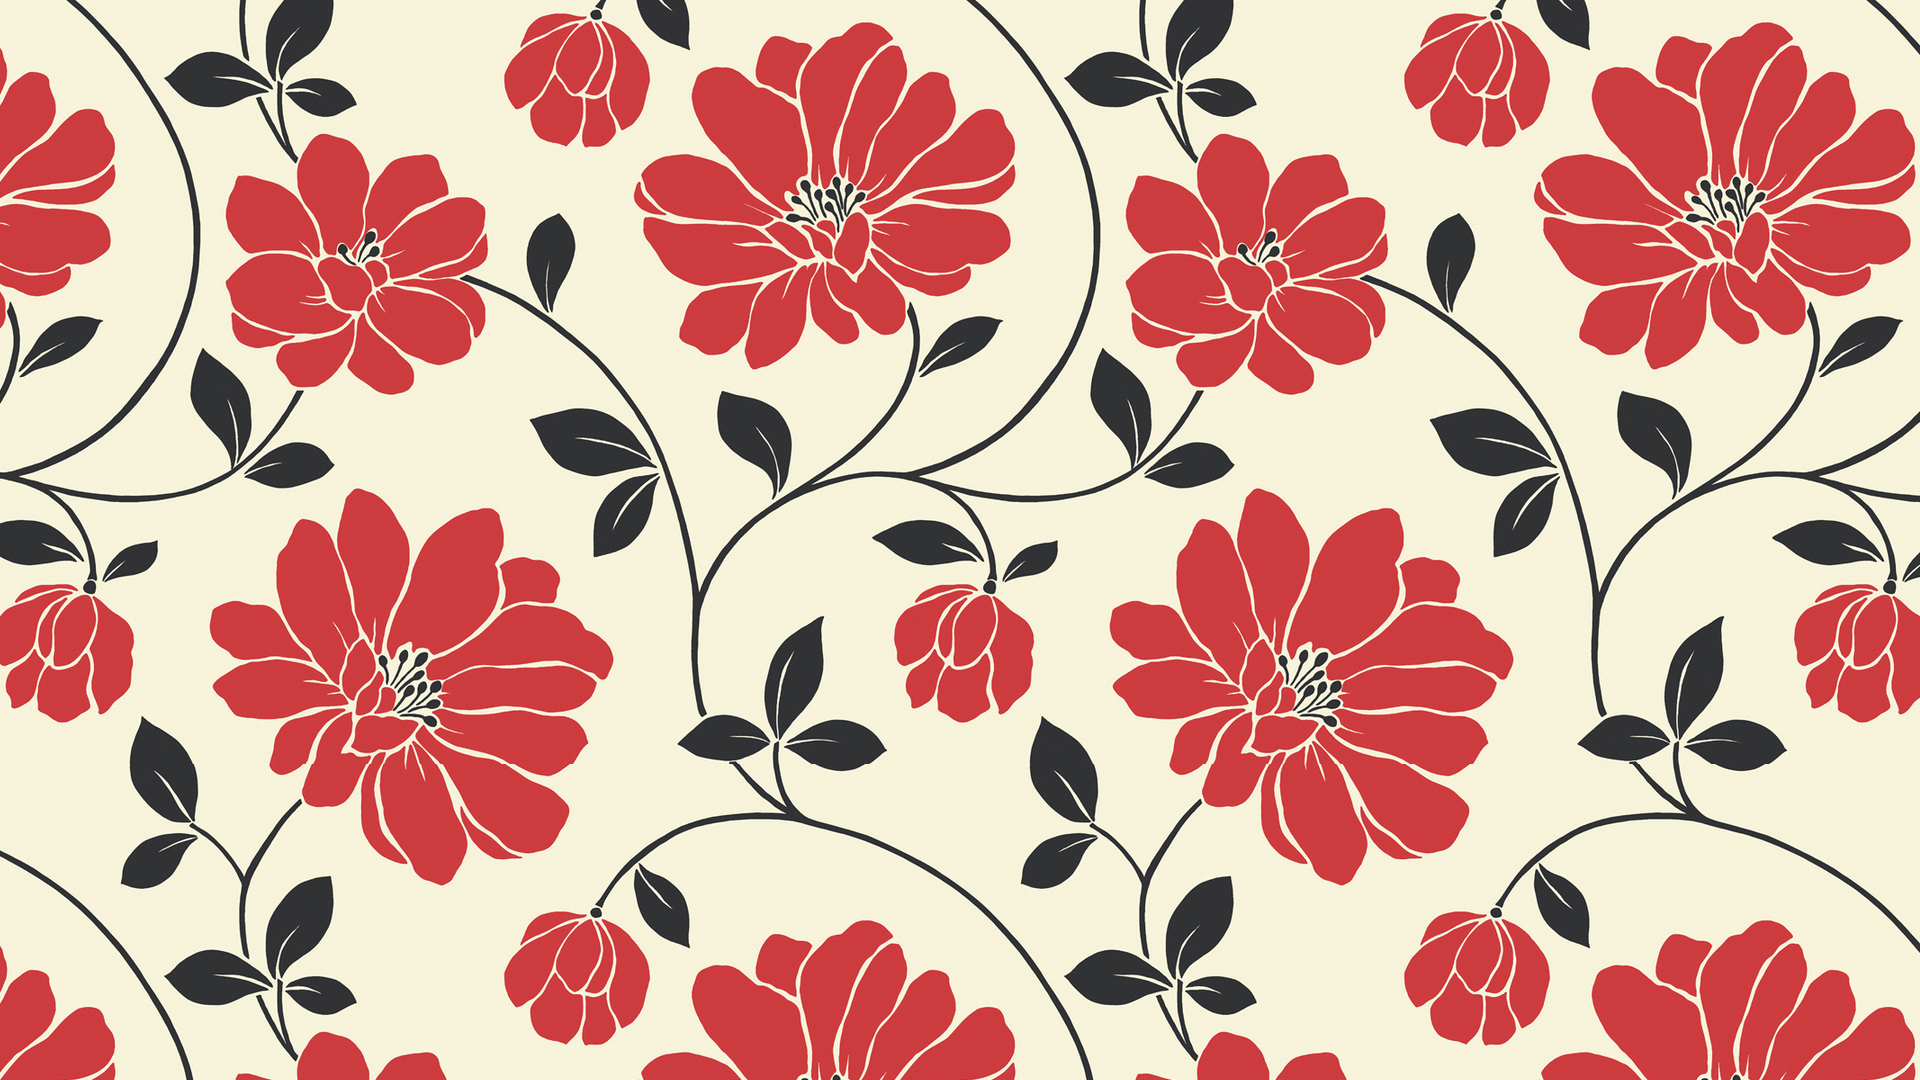 flower pattern tumblr pattern desktop background Poster